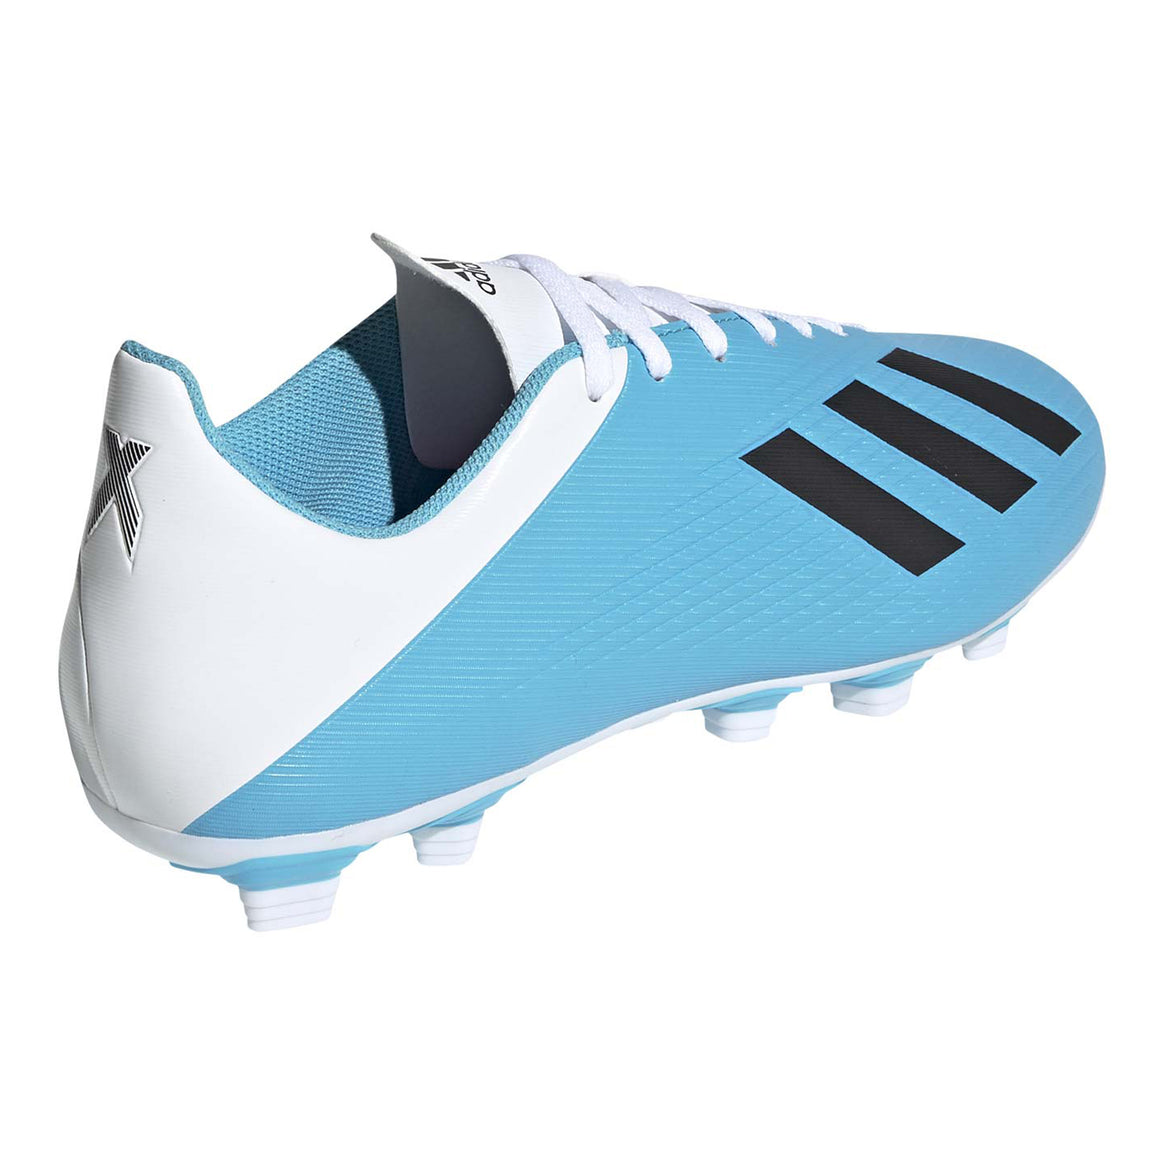 X19.4 FxG Football Boots for Men in Sky & Black